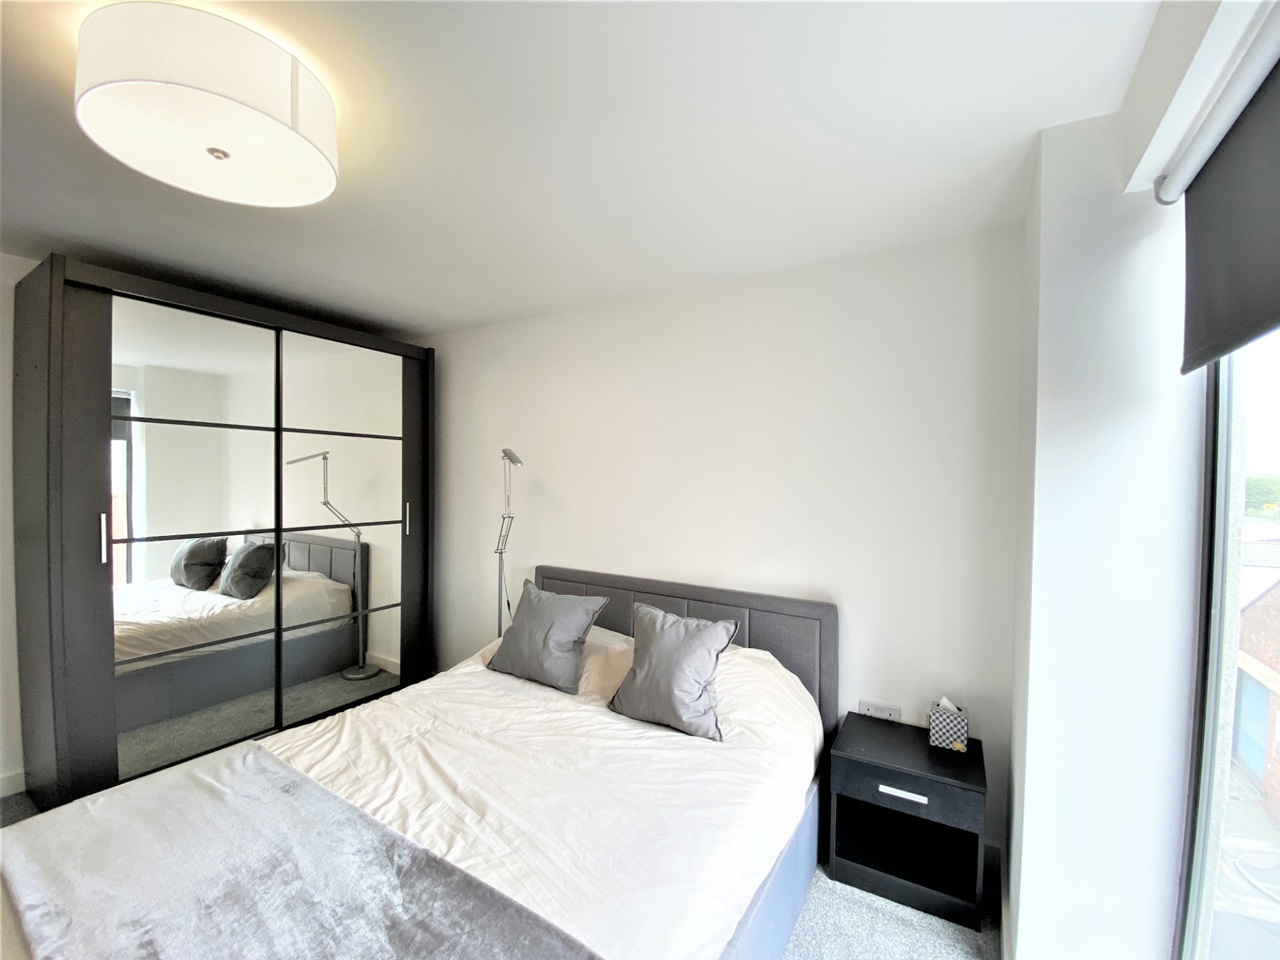 Manchester - 2 Bed Flat, Loom Street, M4 - To Rent Now for ...